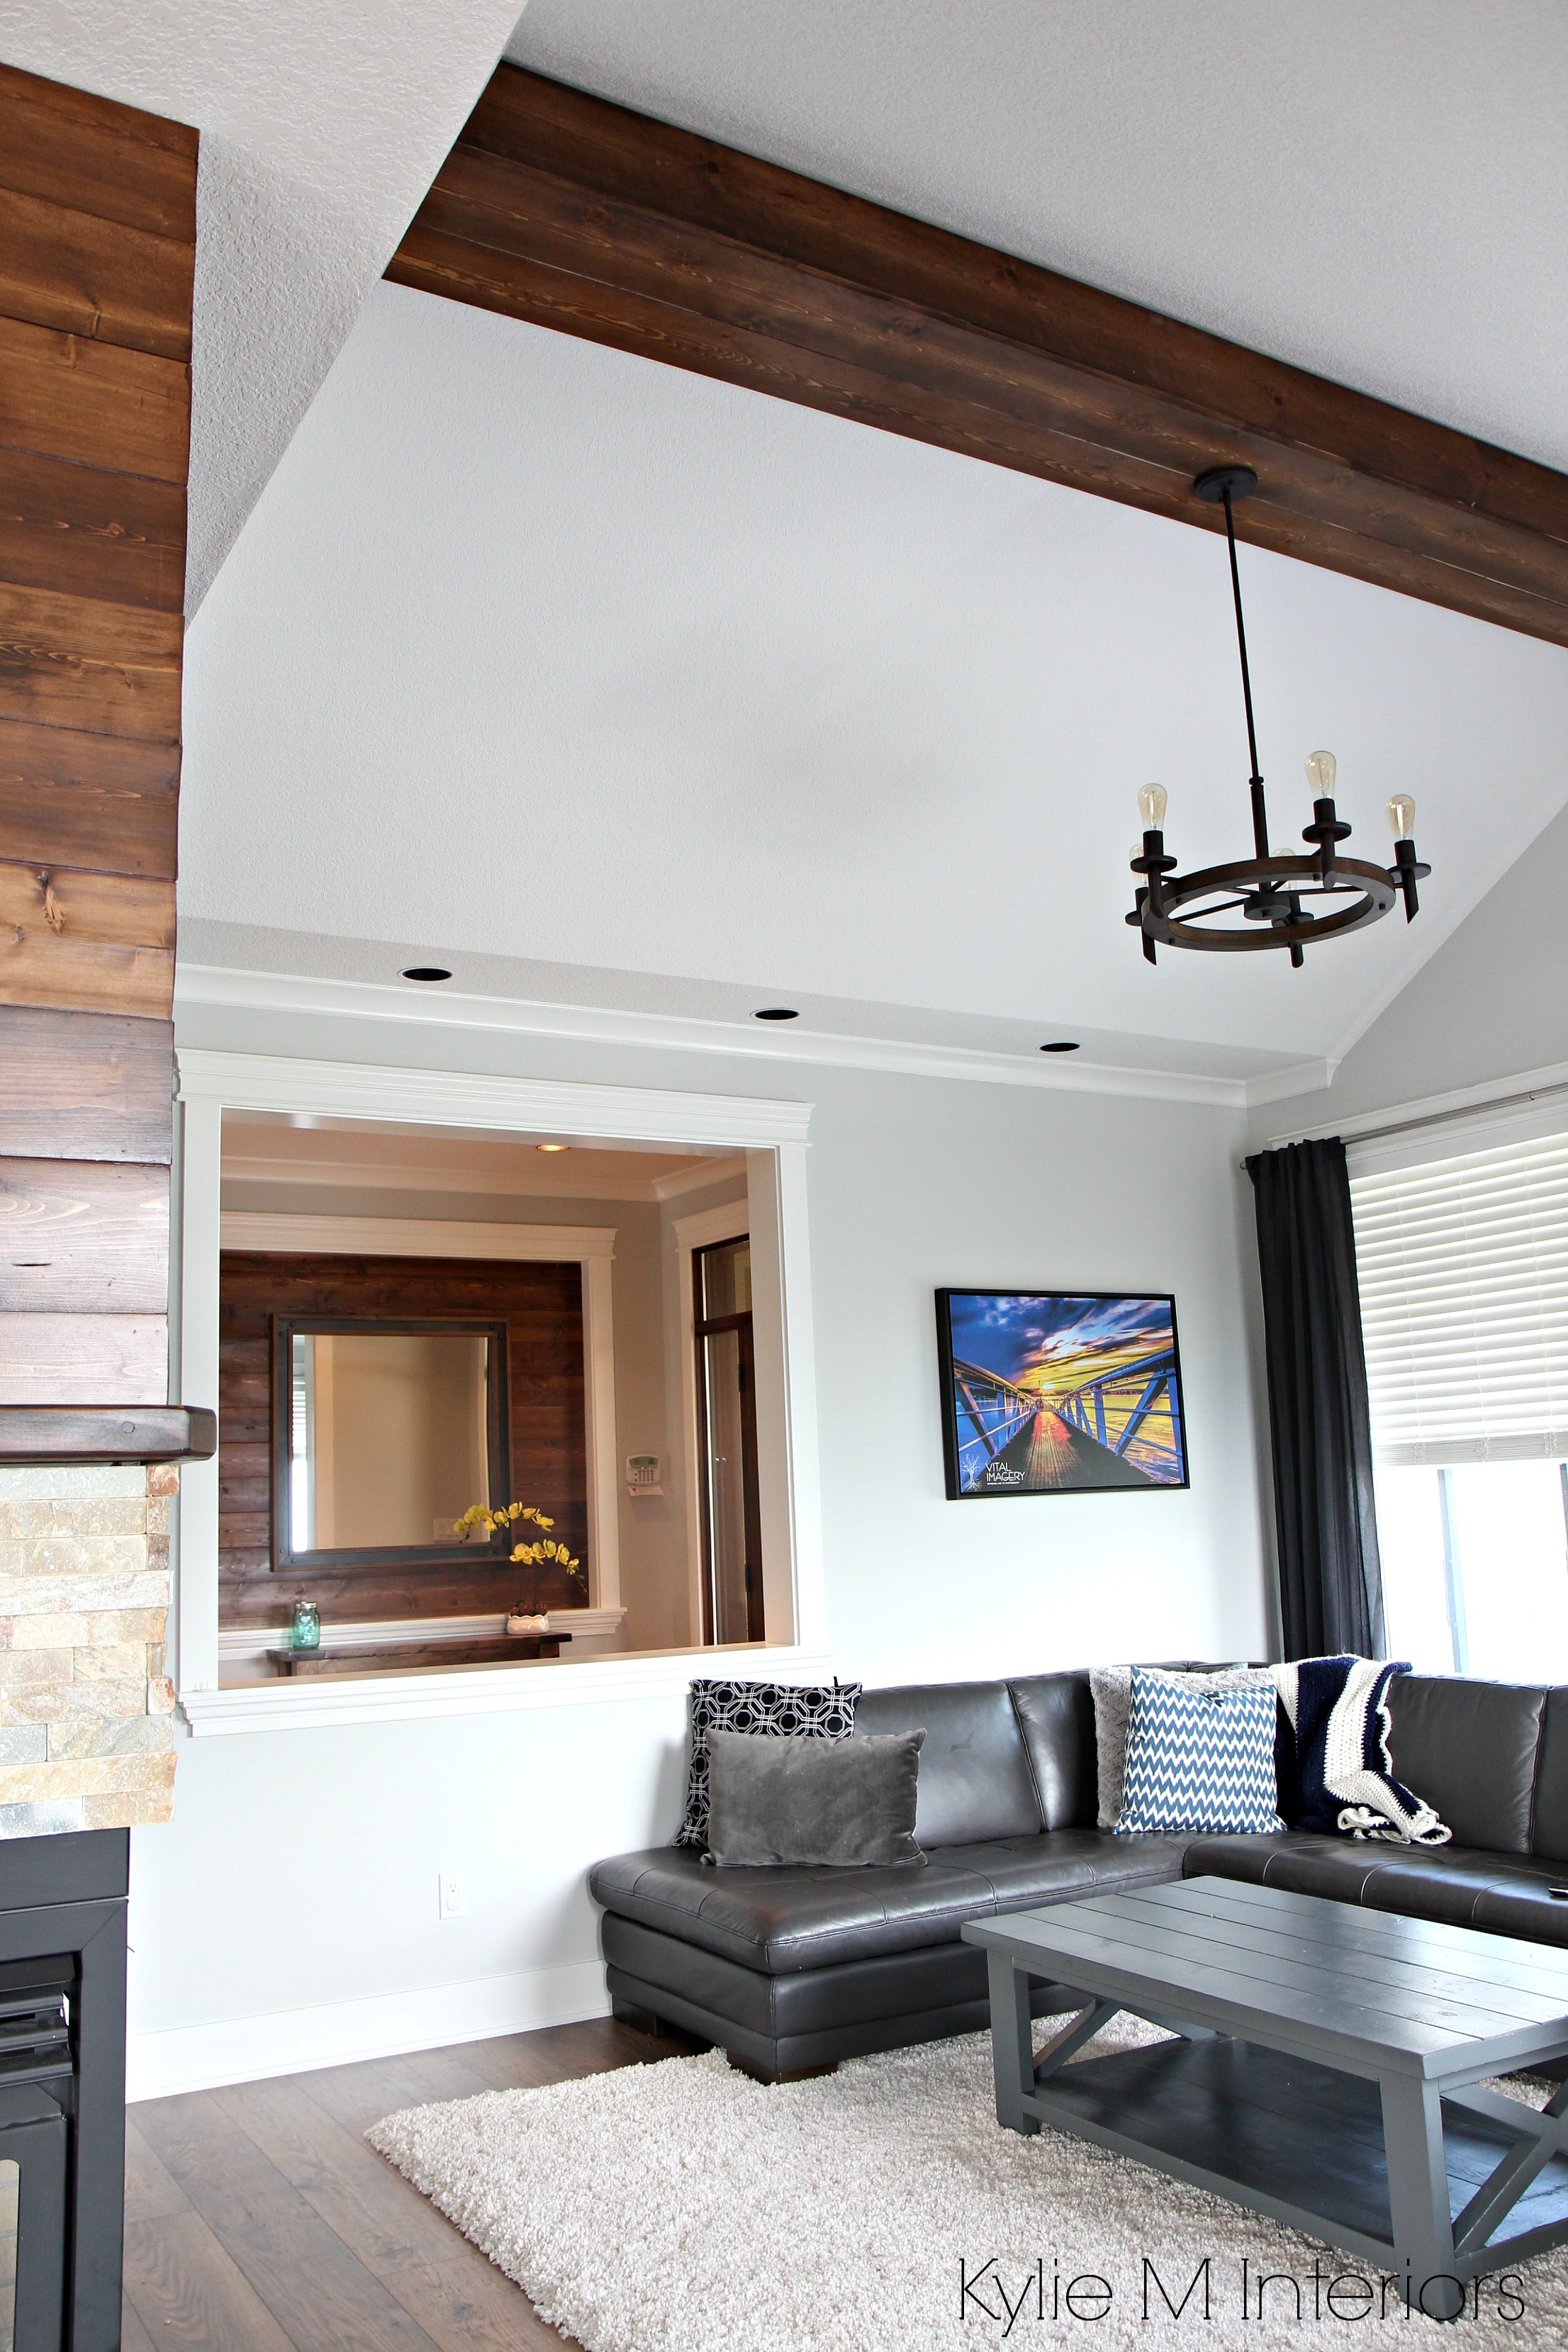 Living room design with vaulted ceiling, faux wood beam